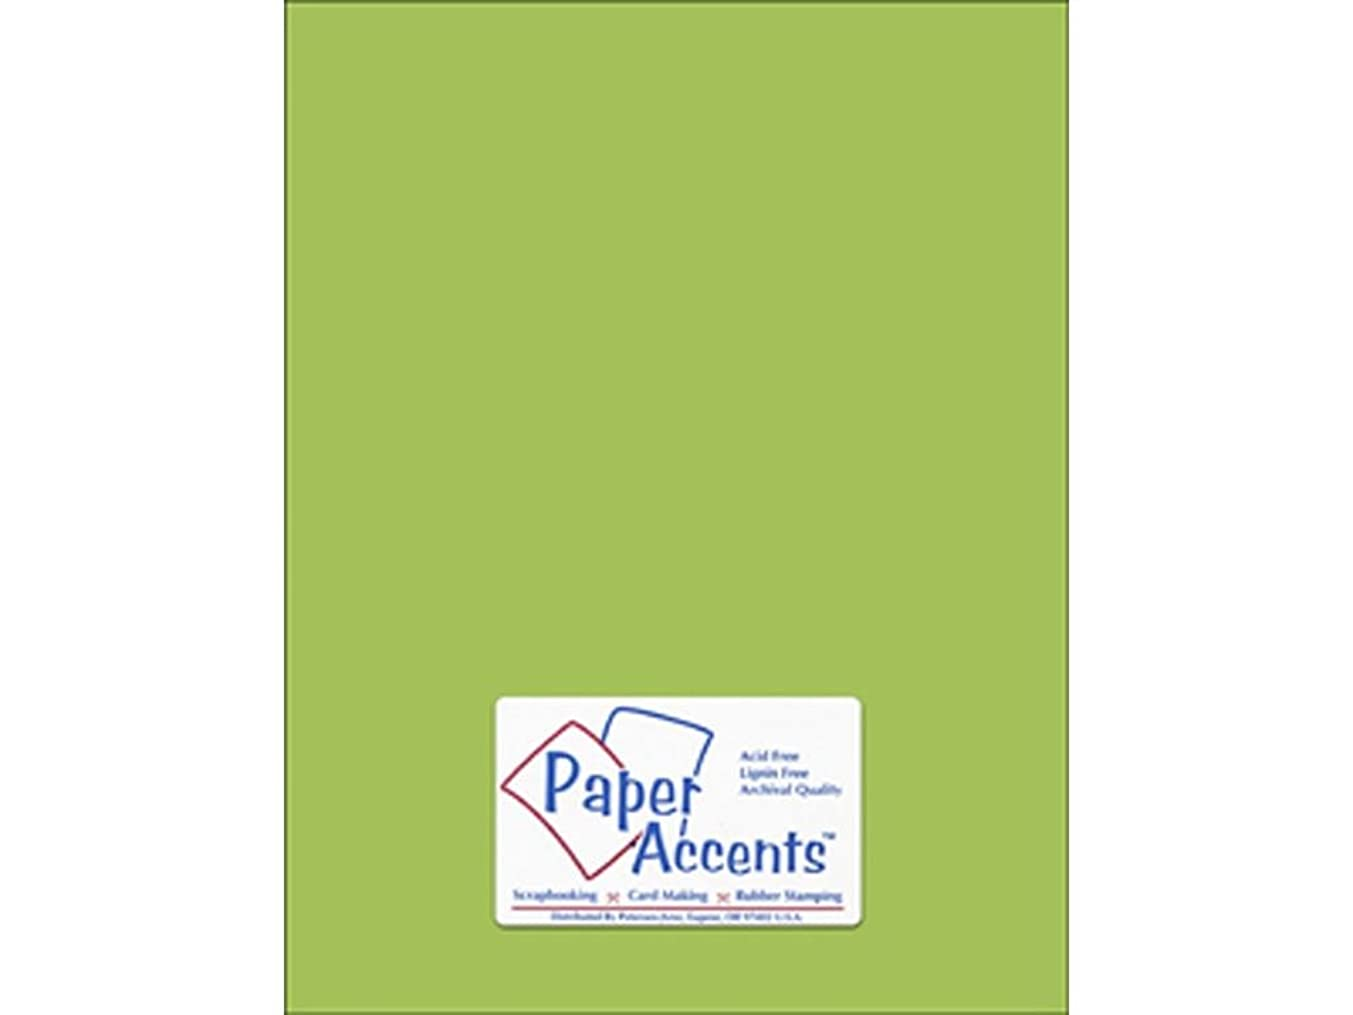 Accent Design Paper Accents Cdstk Smooth 8.5x11 80# Gecko Green